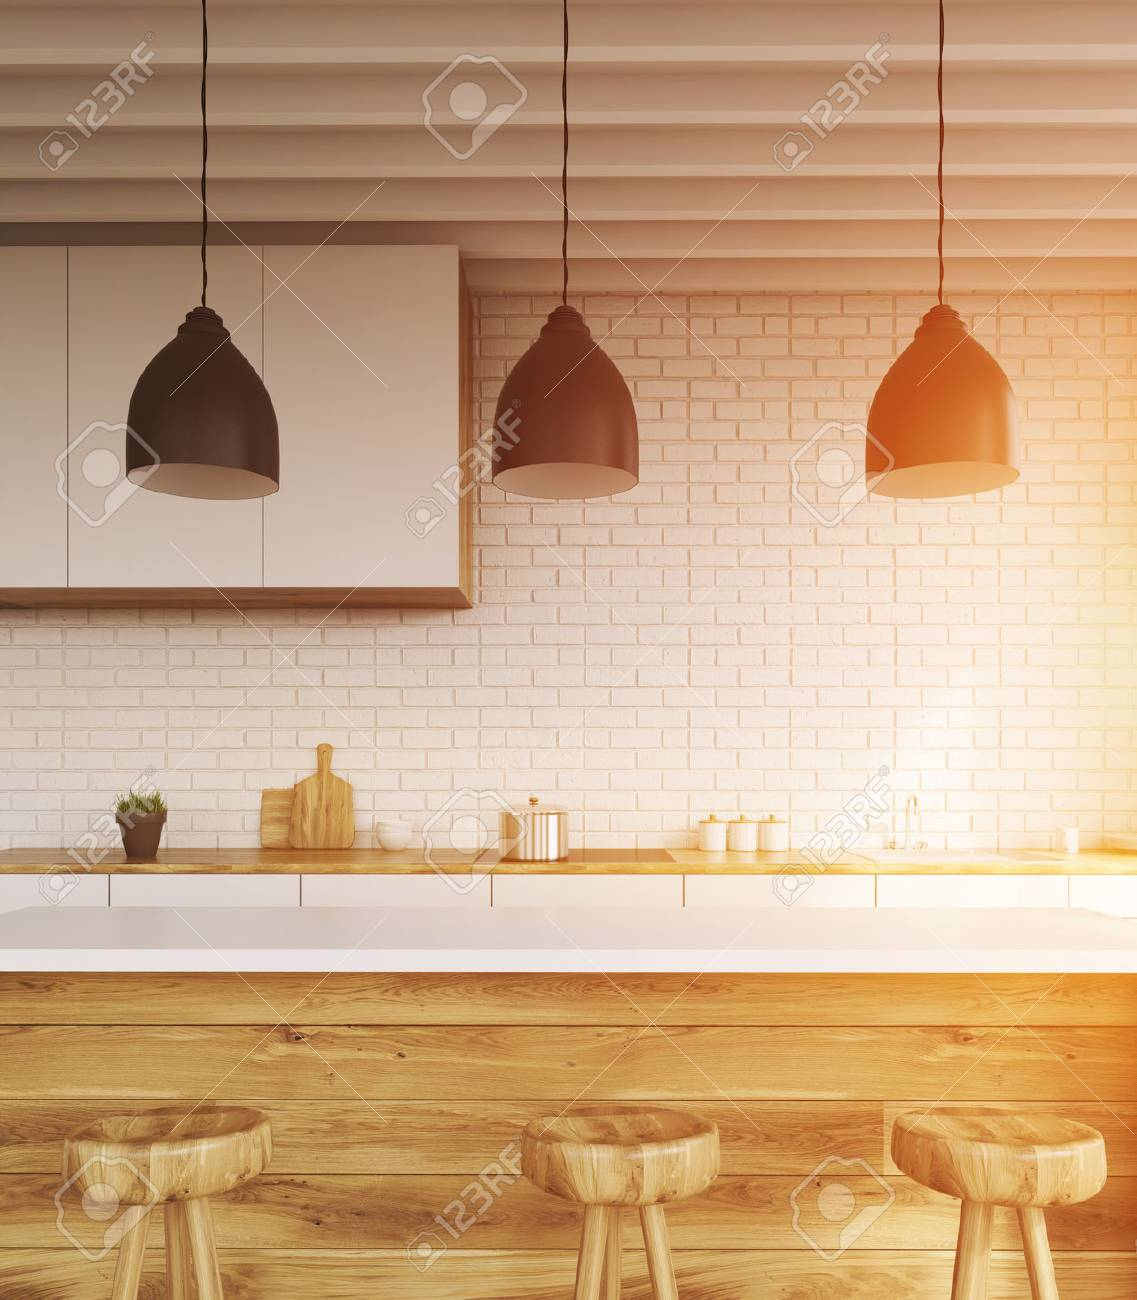 Bar Counter In Kitchen With Stools, Brick Walls, Cupboard And ...